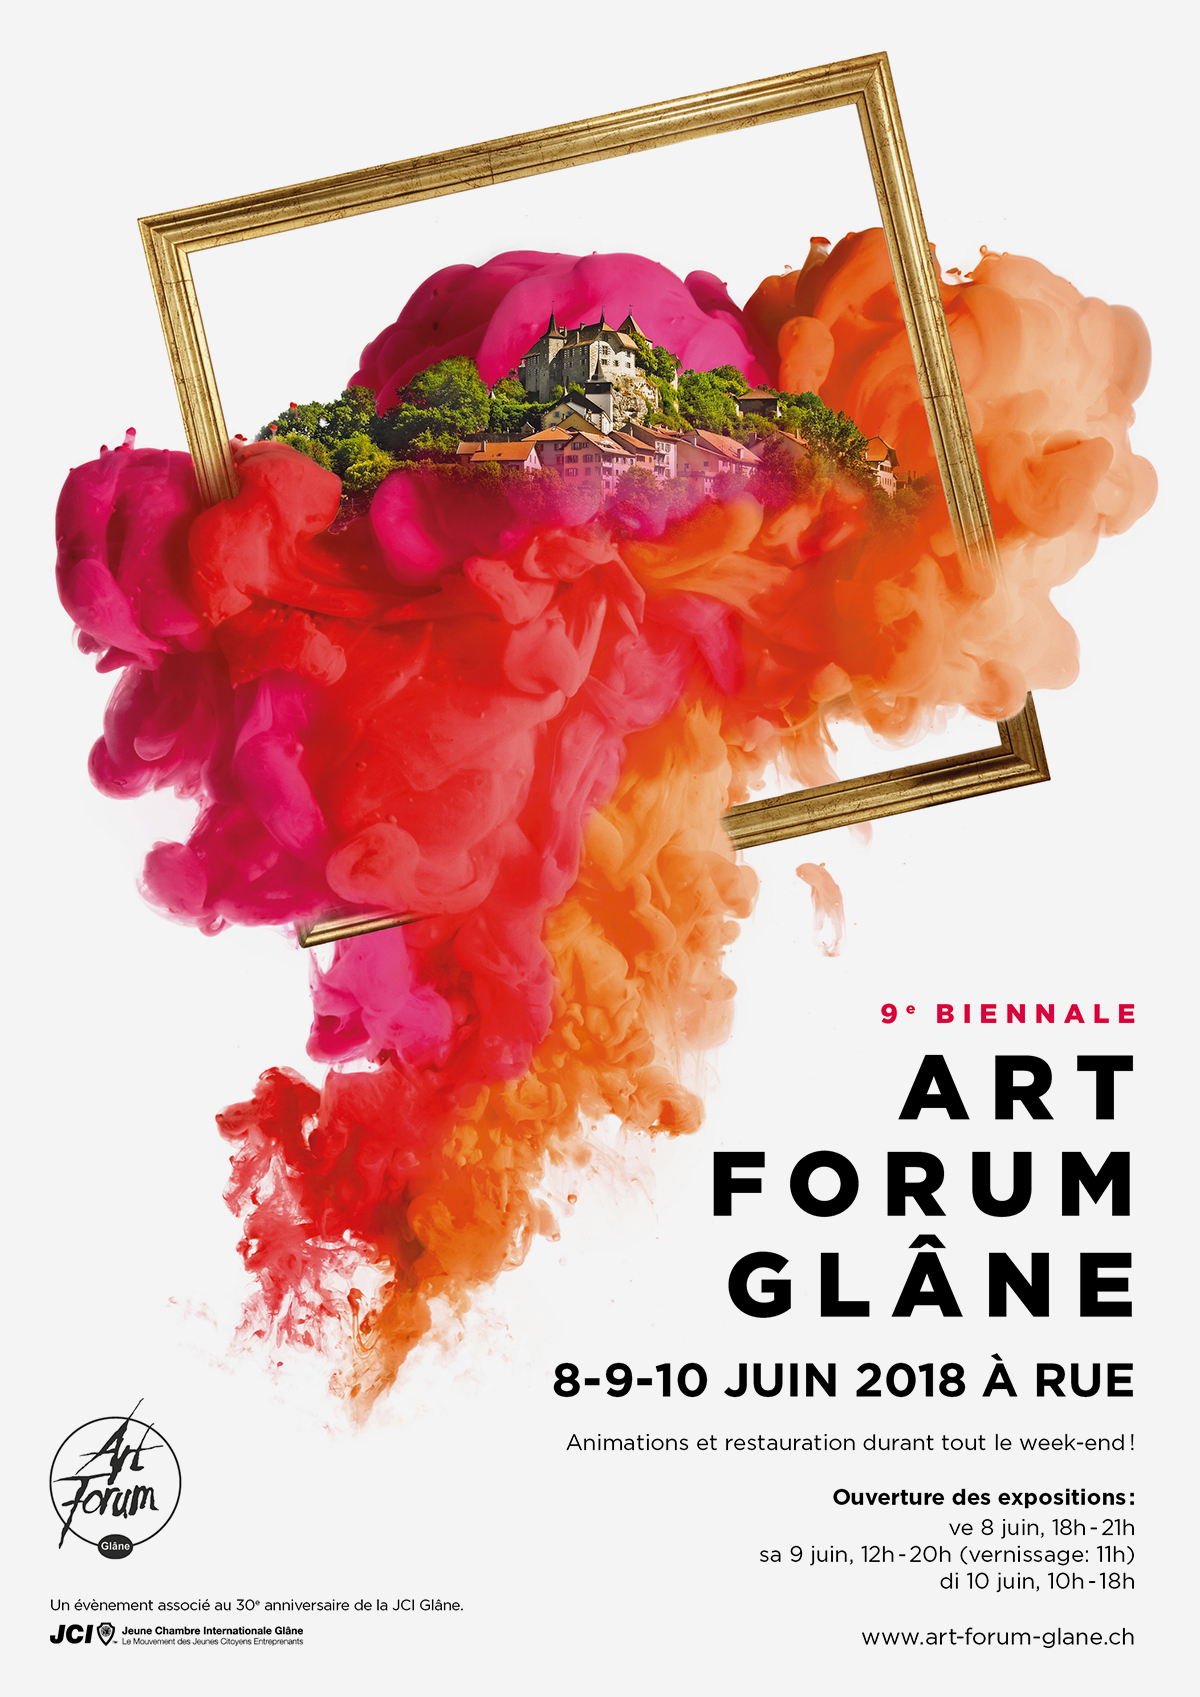 http://www.art-forum-glane.ch/images/afficheA3_artForum2018.jpg